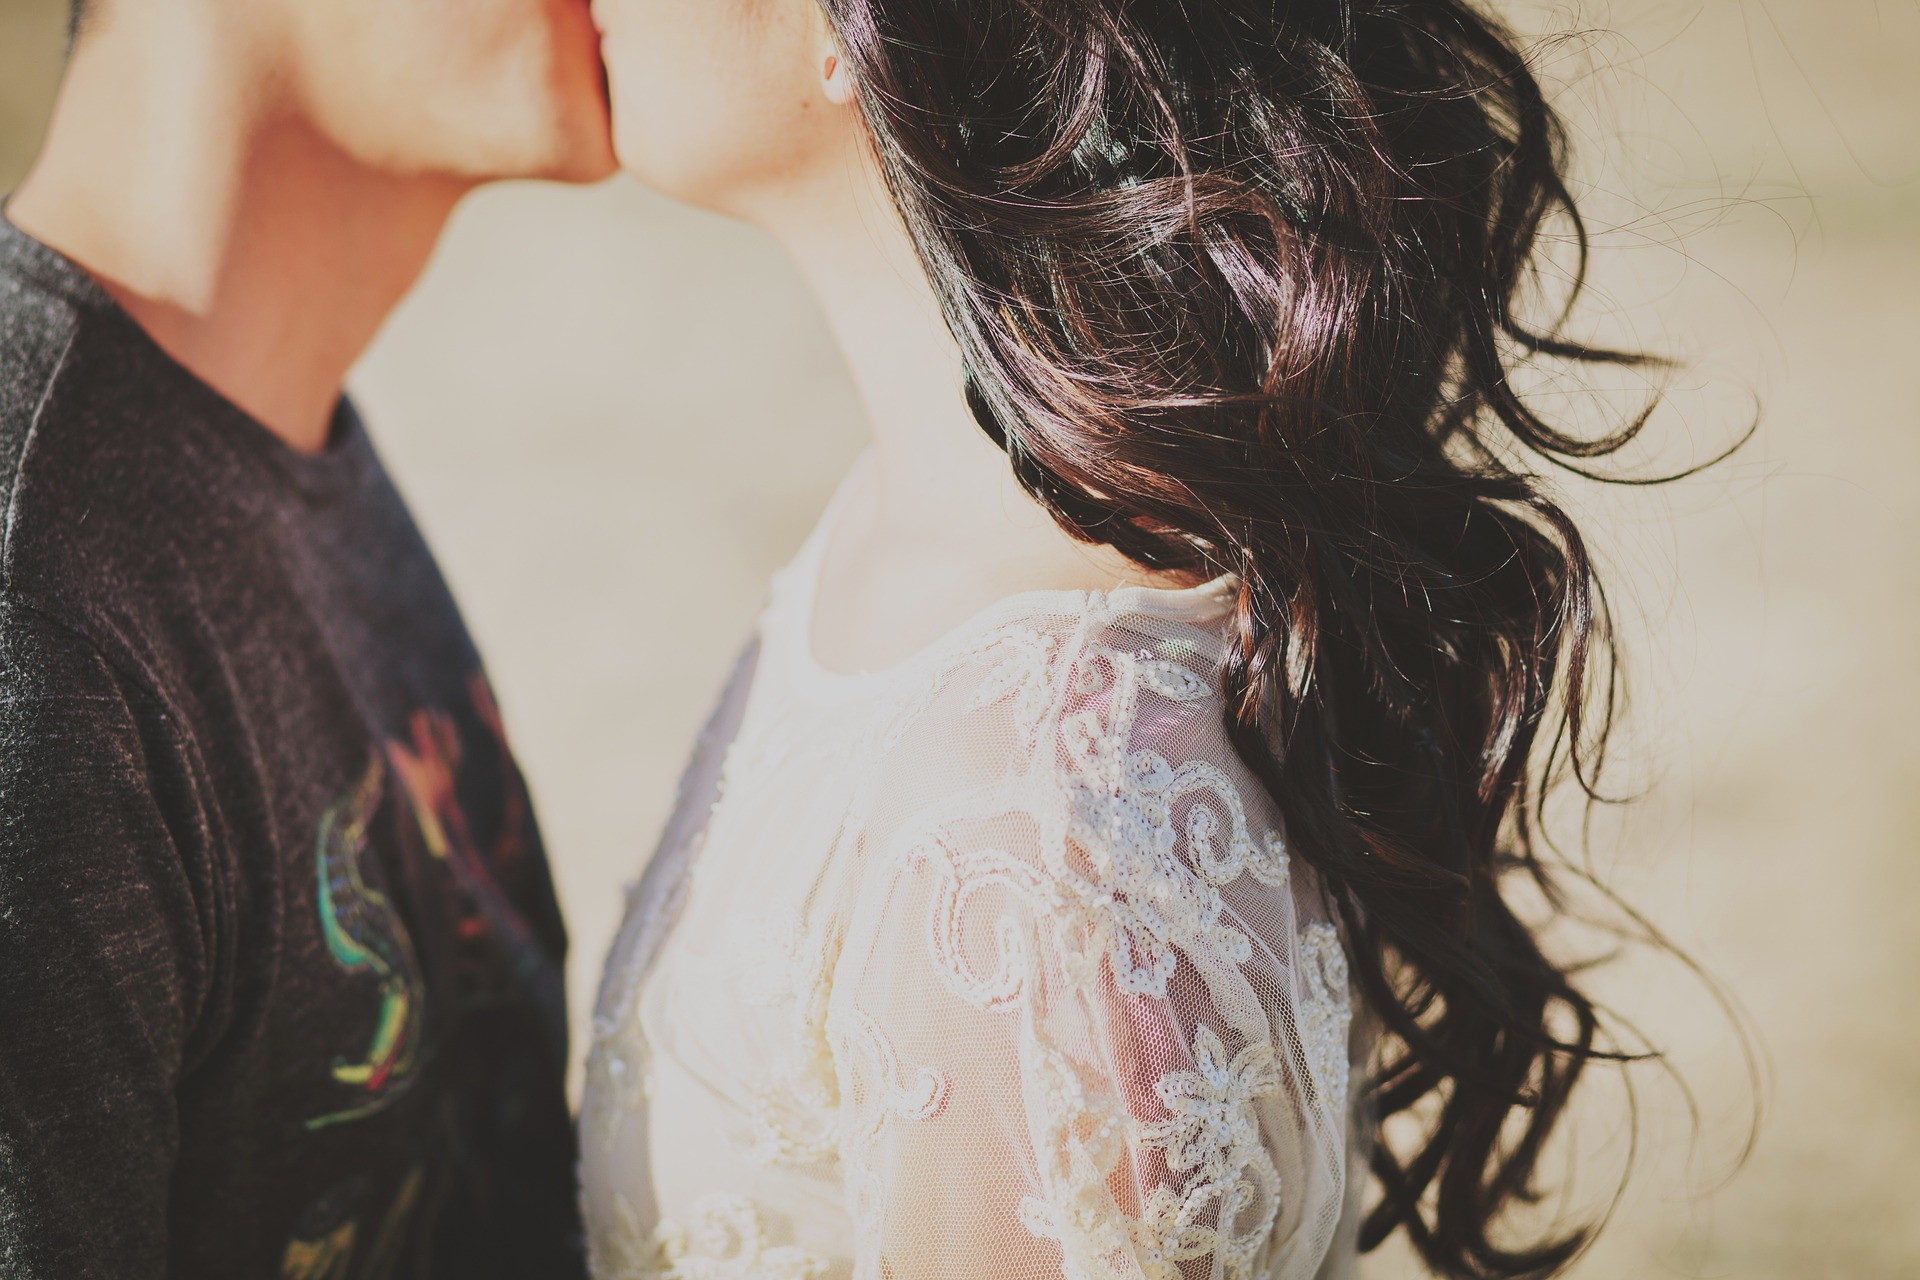 couple, wedding, premarital education, Twogether in Texas, marriage license, discount, $60 discount, wedding venues, Austin, wedding checklist, communication, connection, emotions, conflict resolution, apologizing